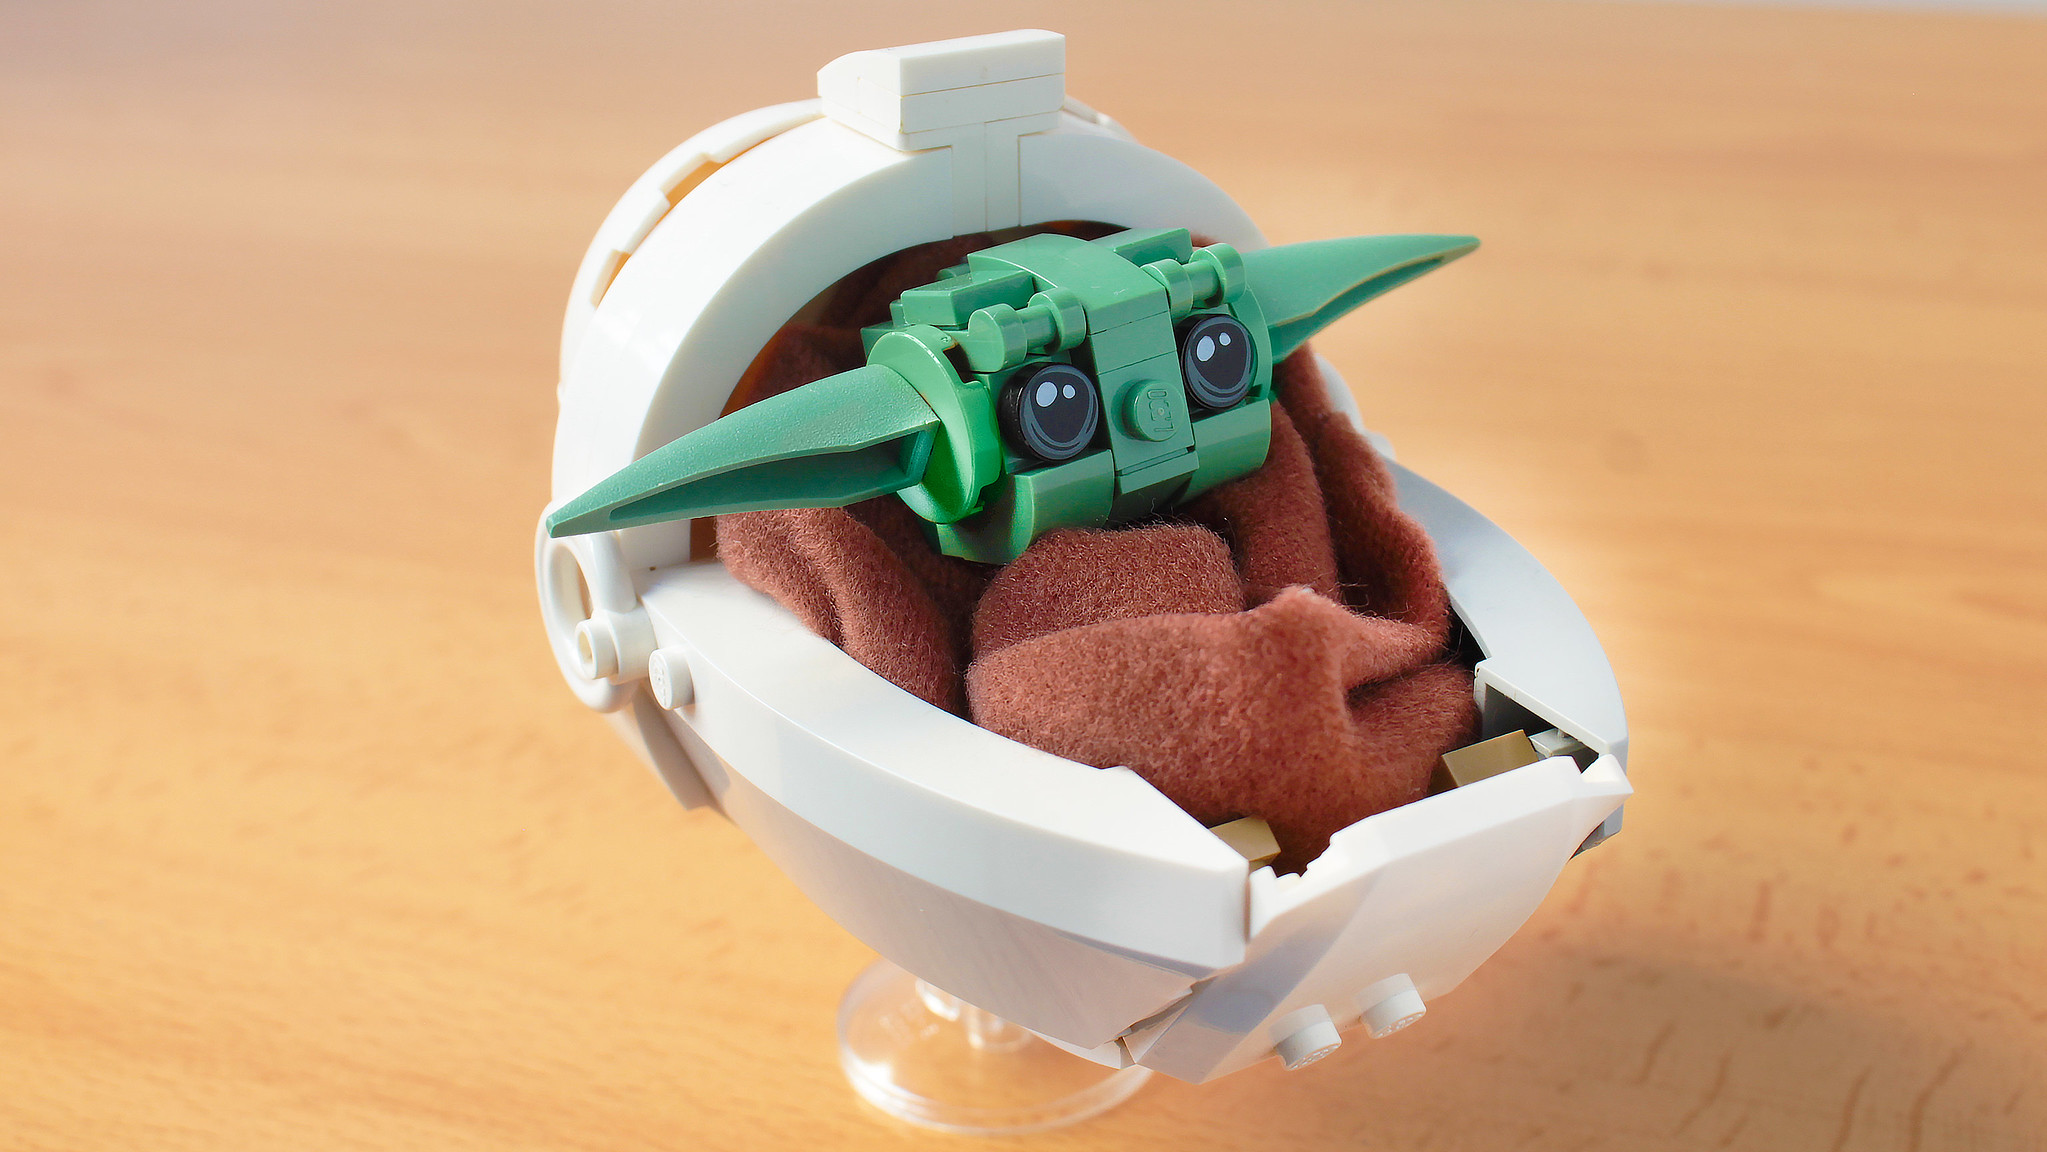 Lego Baby Yoda from the Mandalorian